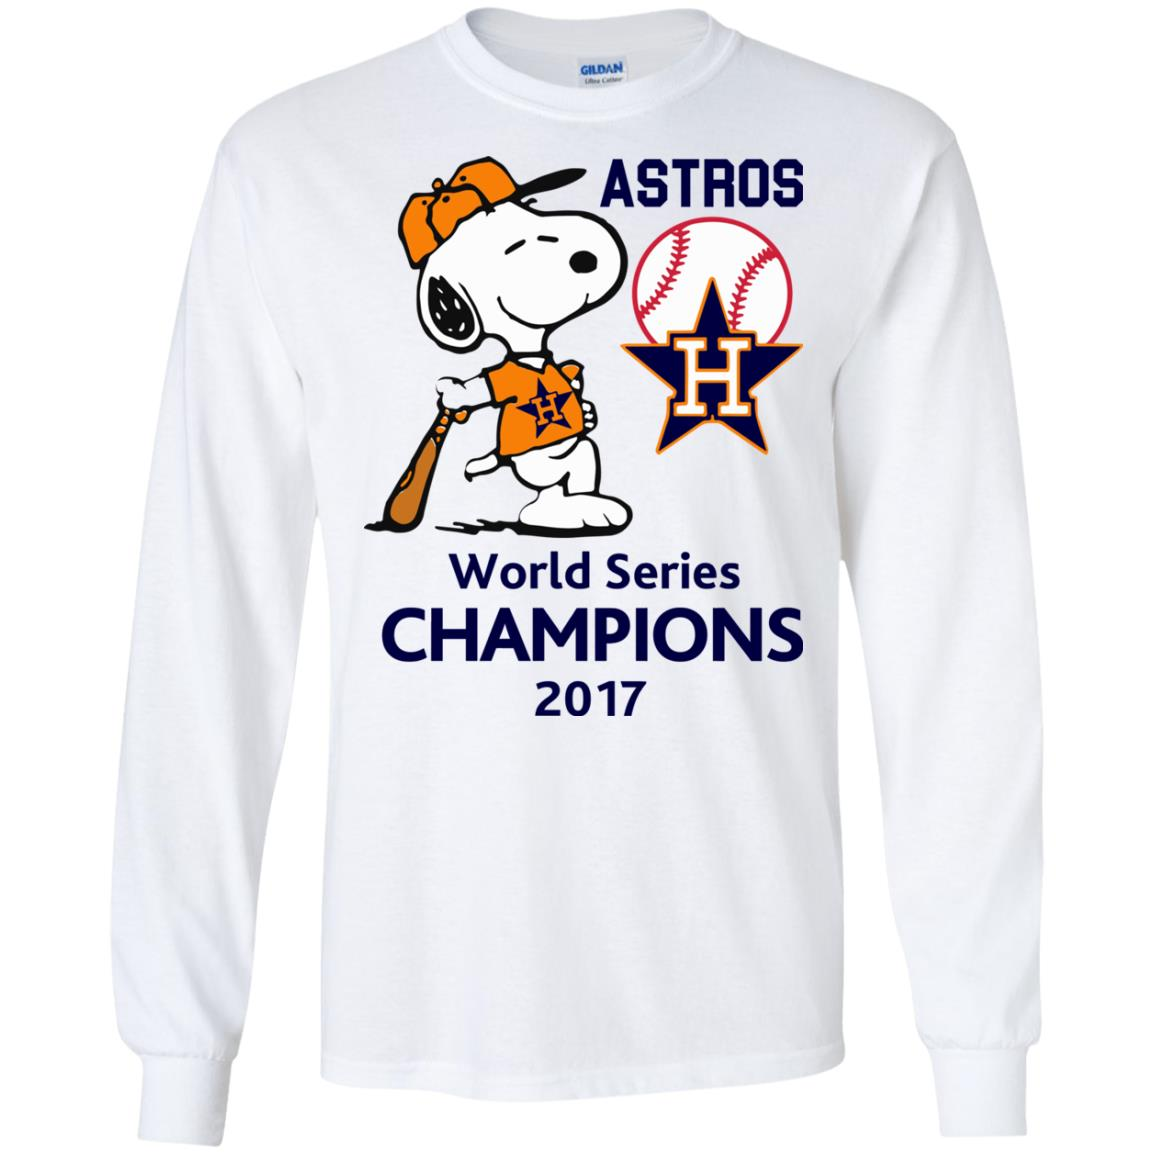 image 954 - Snoopy Astros World Series Champions Shirt, Sweater, Hoodie